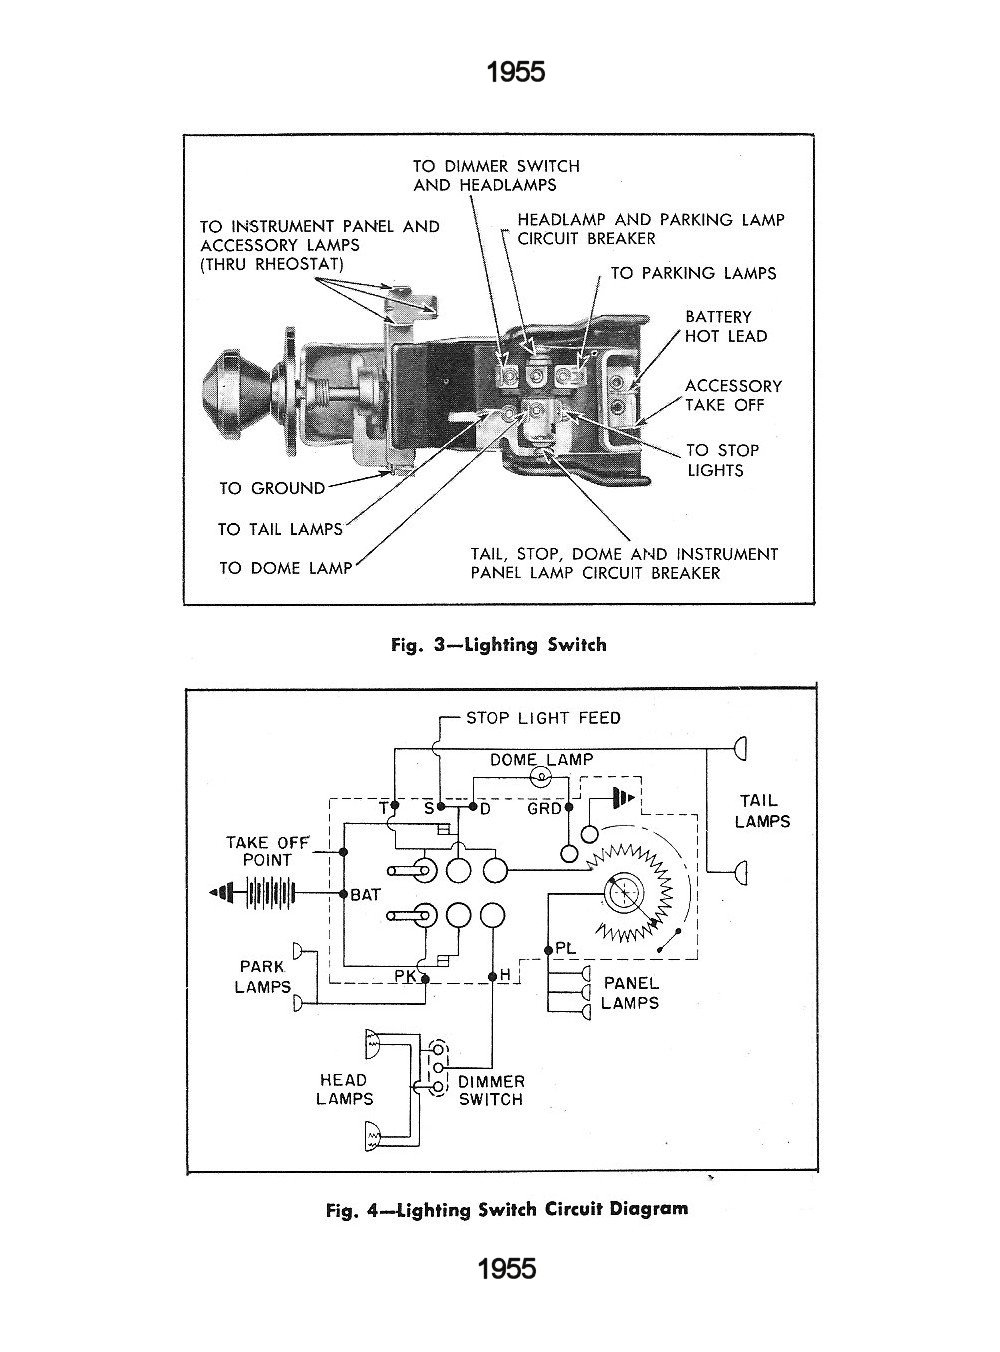 63 Chevy Headlight Switch Wiring Diagram | Manual E-Books - Headlight Switch Wiring Diagram Chevy Truck